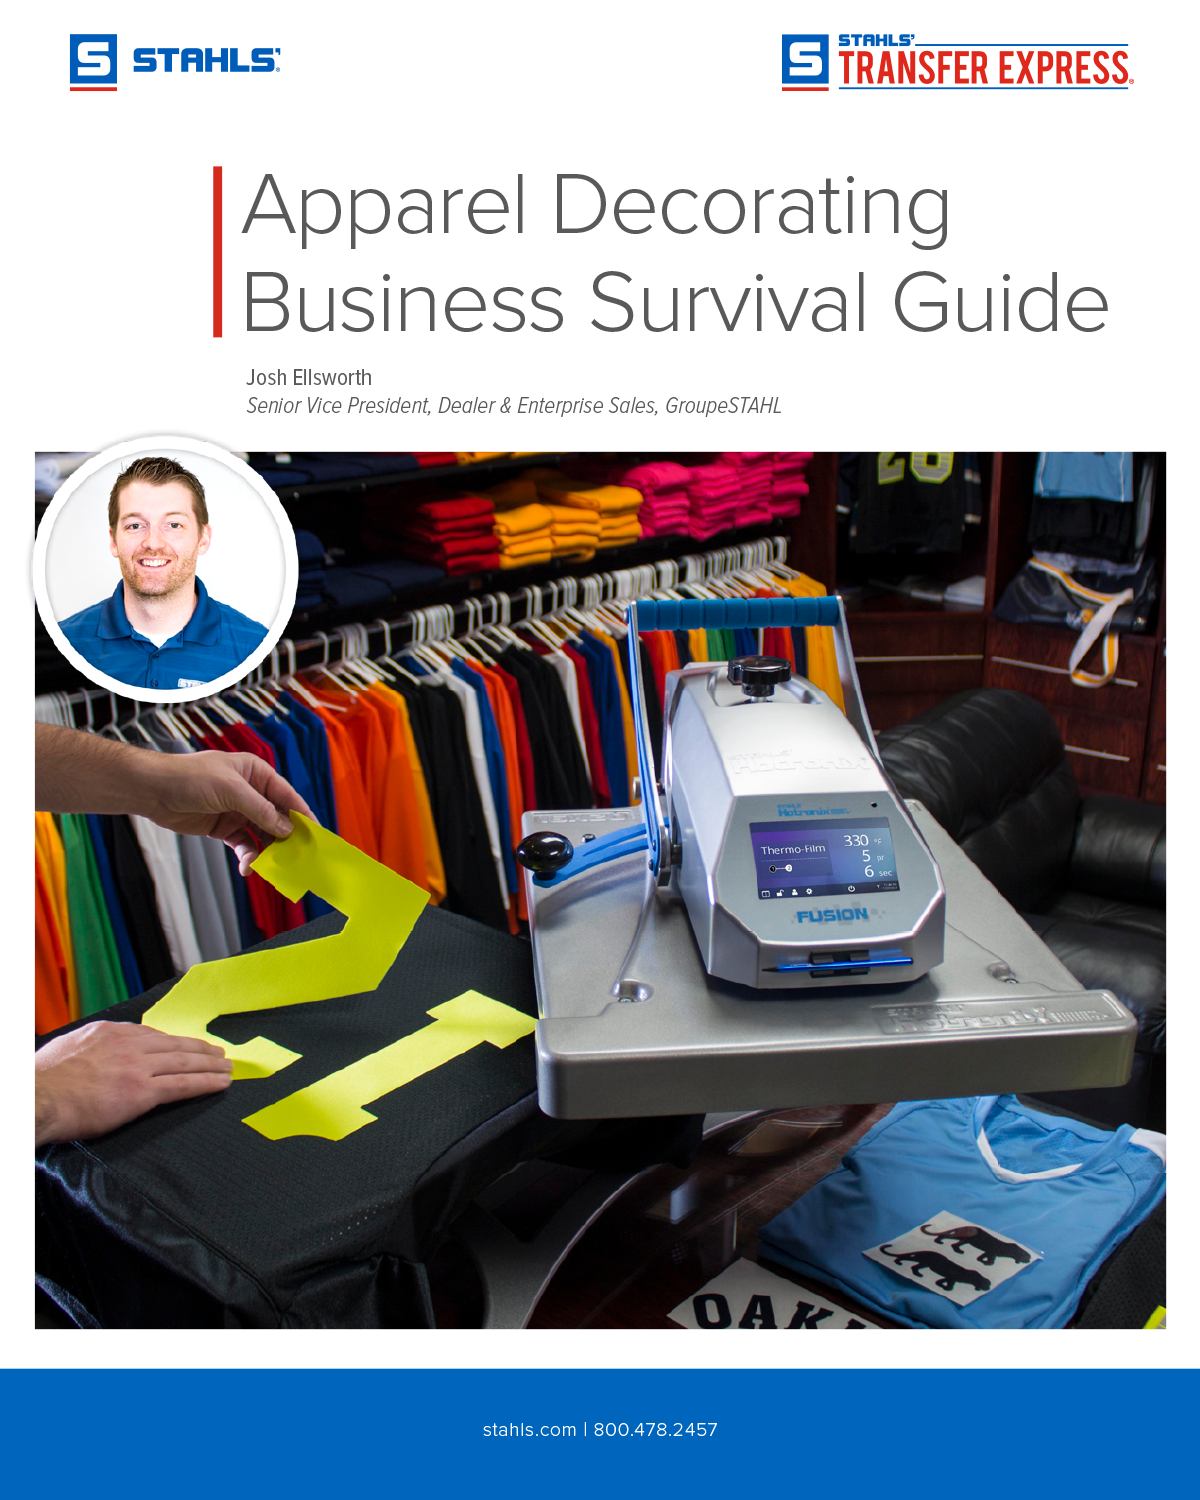 Stahls Apparel Decorators Survival Guide EBook